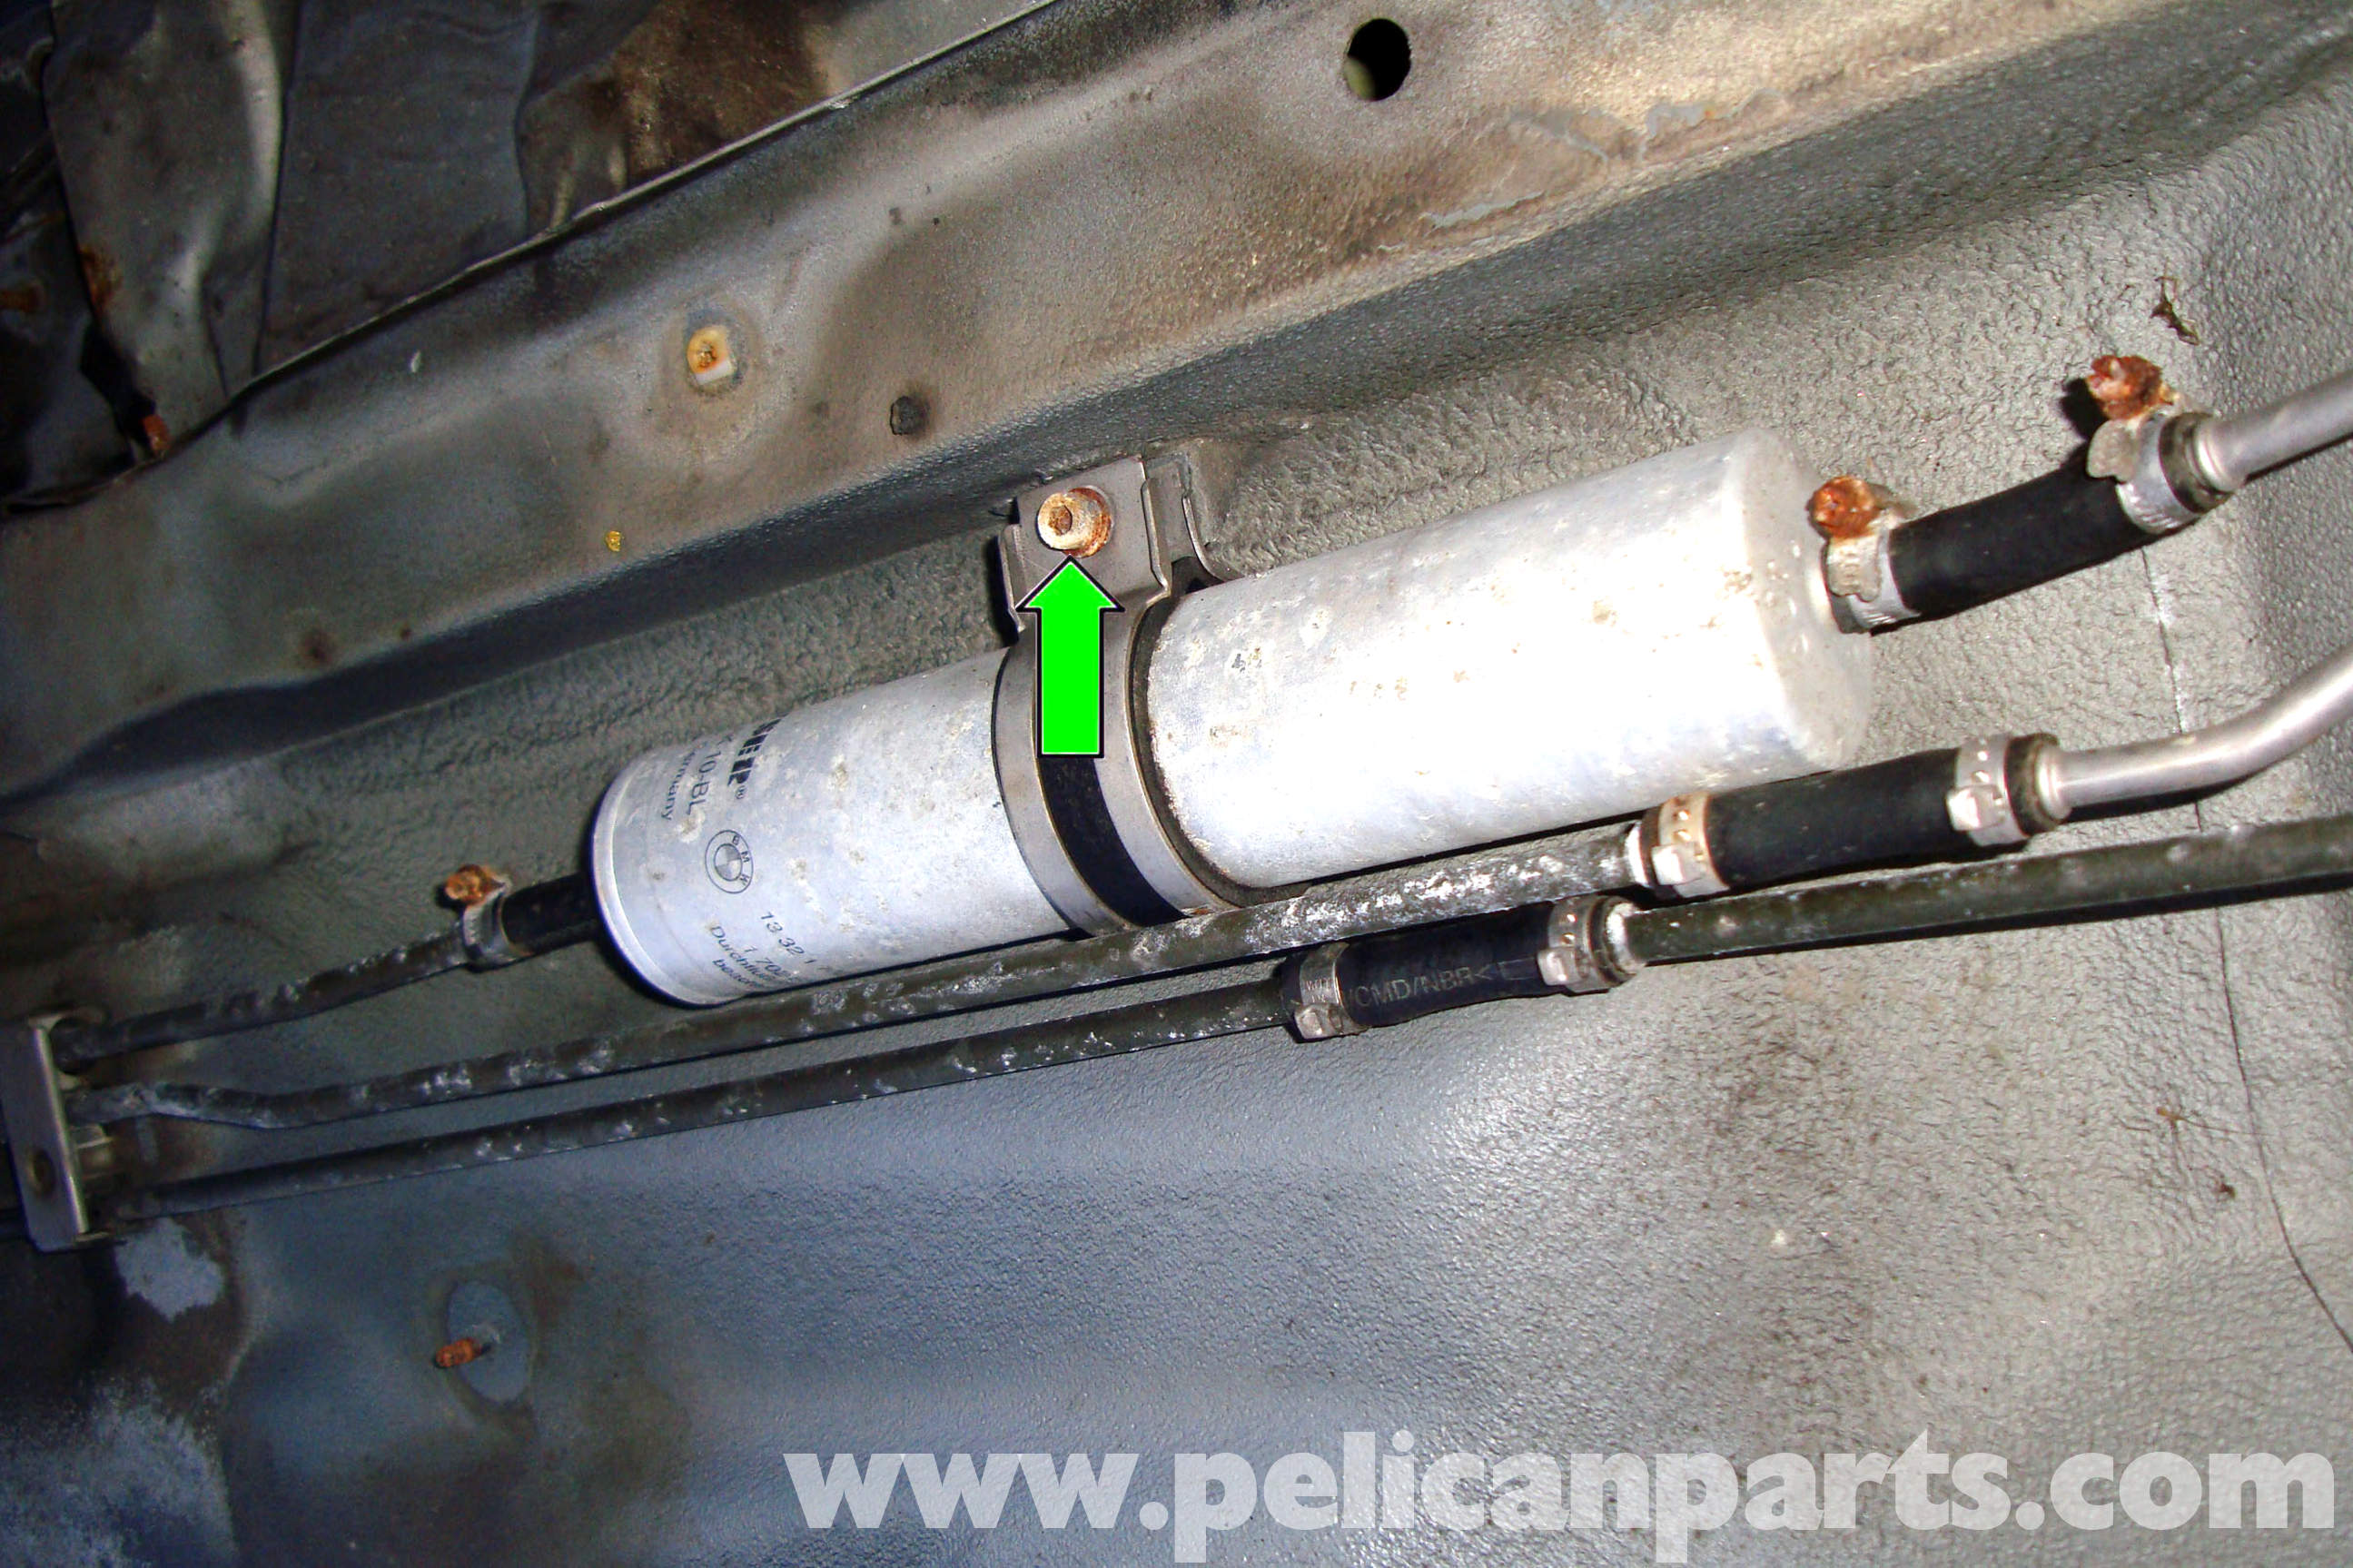 bmw 525i fuel filter location - wiring diagram new nut-wire-a -  nut-wire-a.weimaranerzampadargento.it  weimaraner zampa d'argento